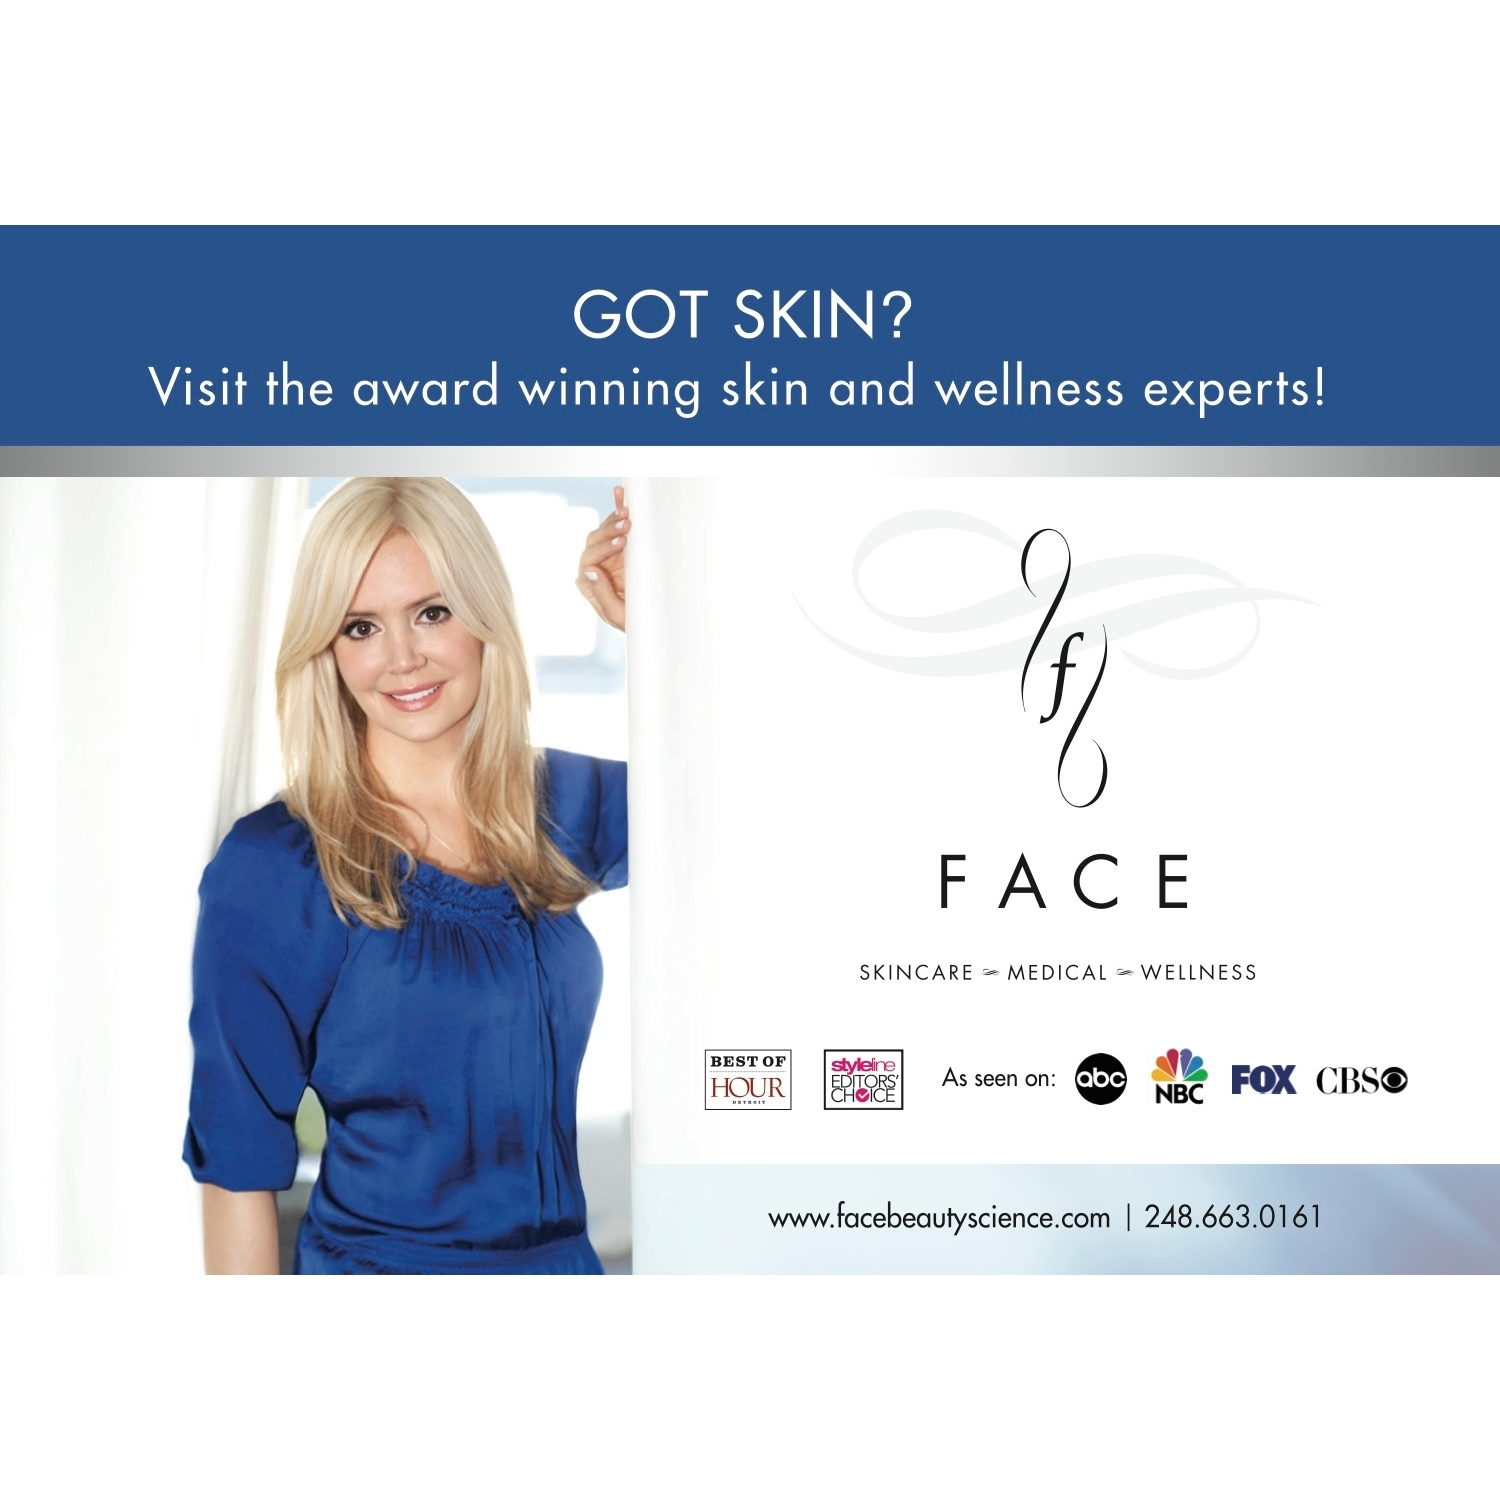 FACE Skincare~Medical~Wellness - Bingham Farms, MI 48025 - (248) 663-0161 | ShowMeLocal.com